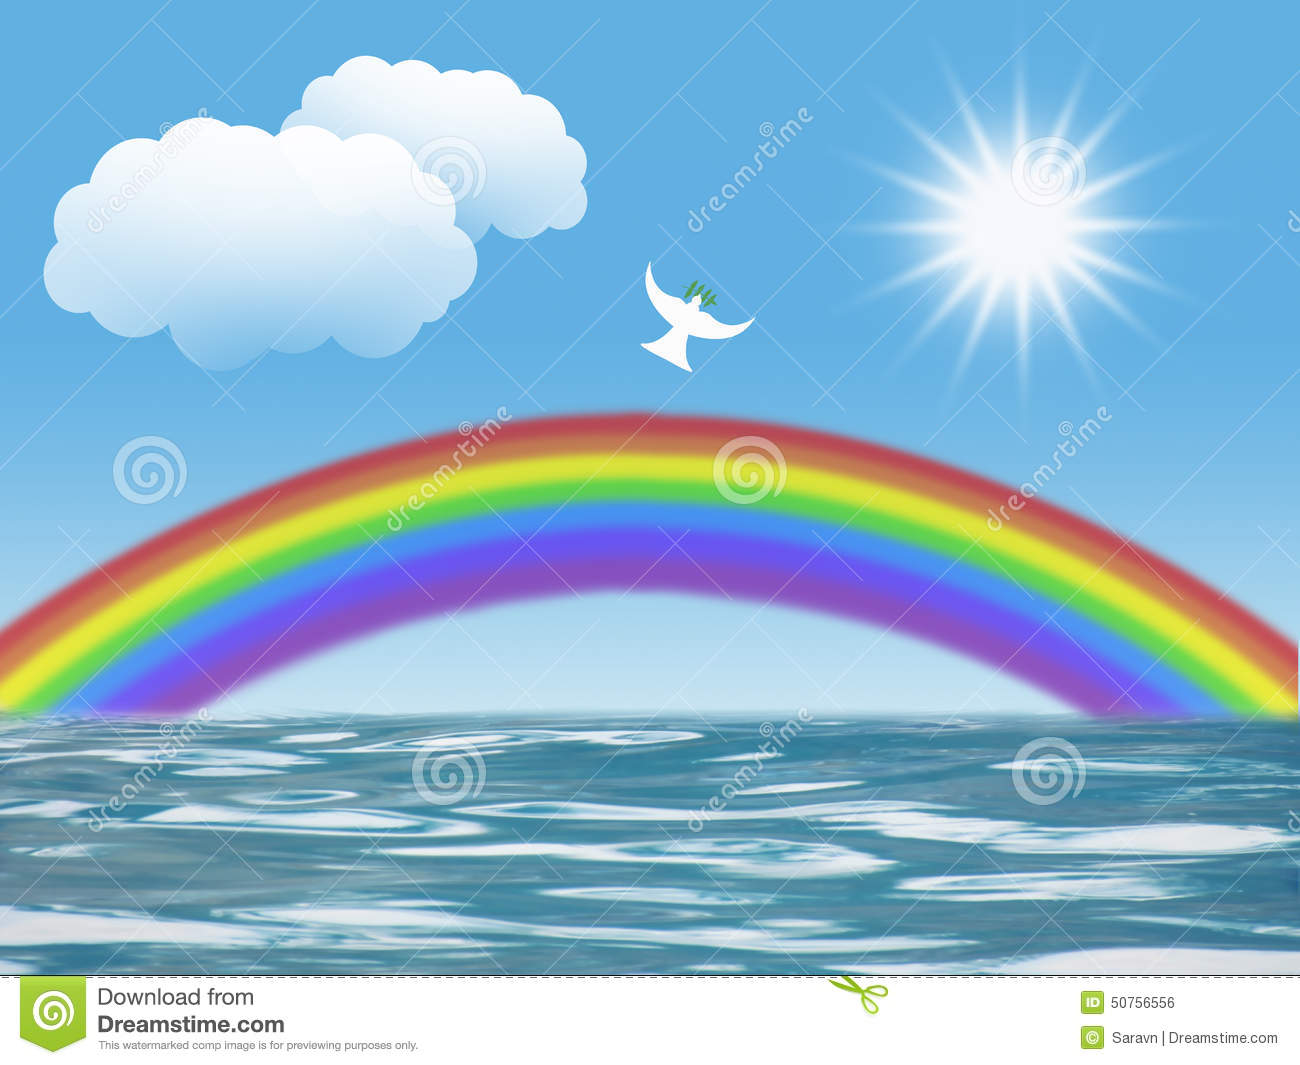 Christian love symbol stock photos 7176 images white dove flying to sun with olive leaf rainbow clouds christian symbol of peace and holy buycottarizona Choice Image